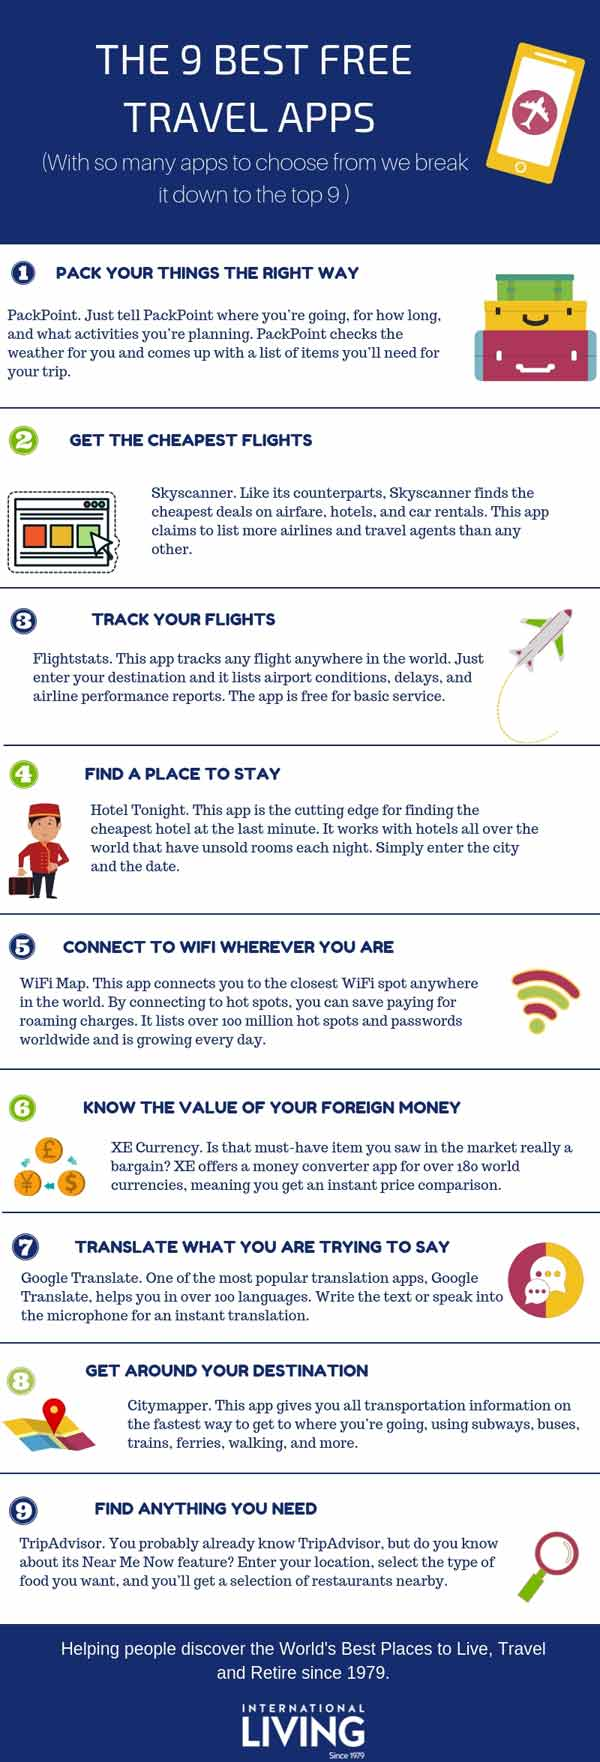 Best Travel Apps Infographic